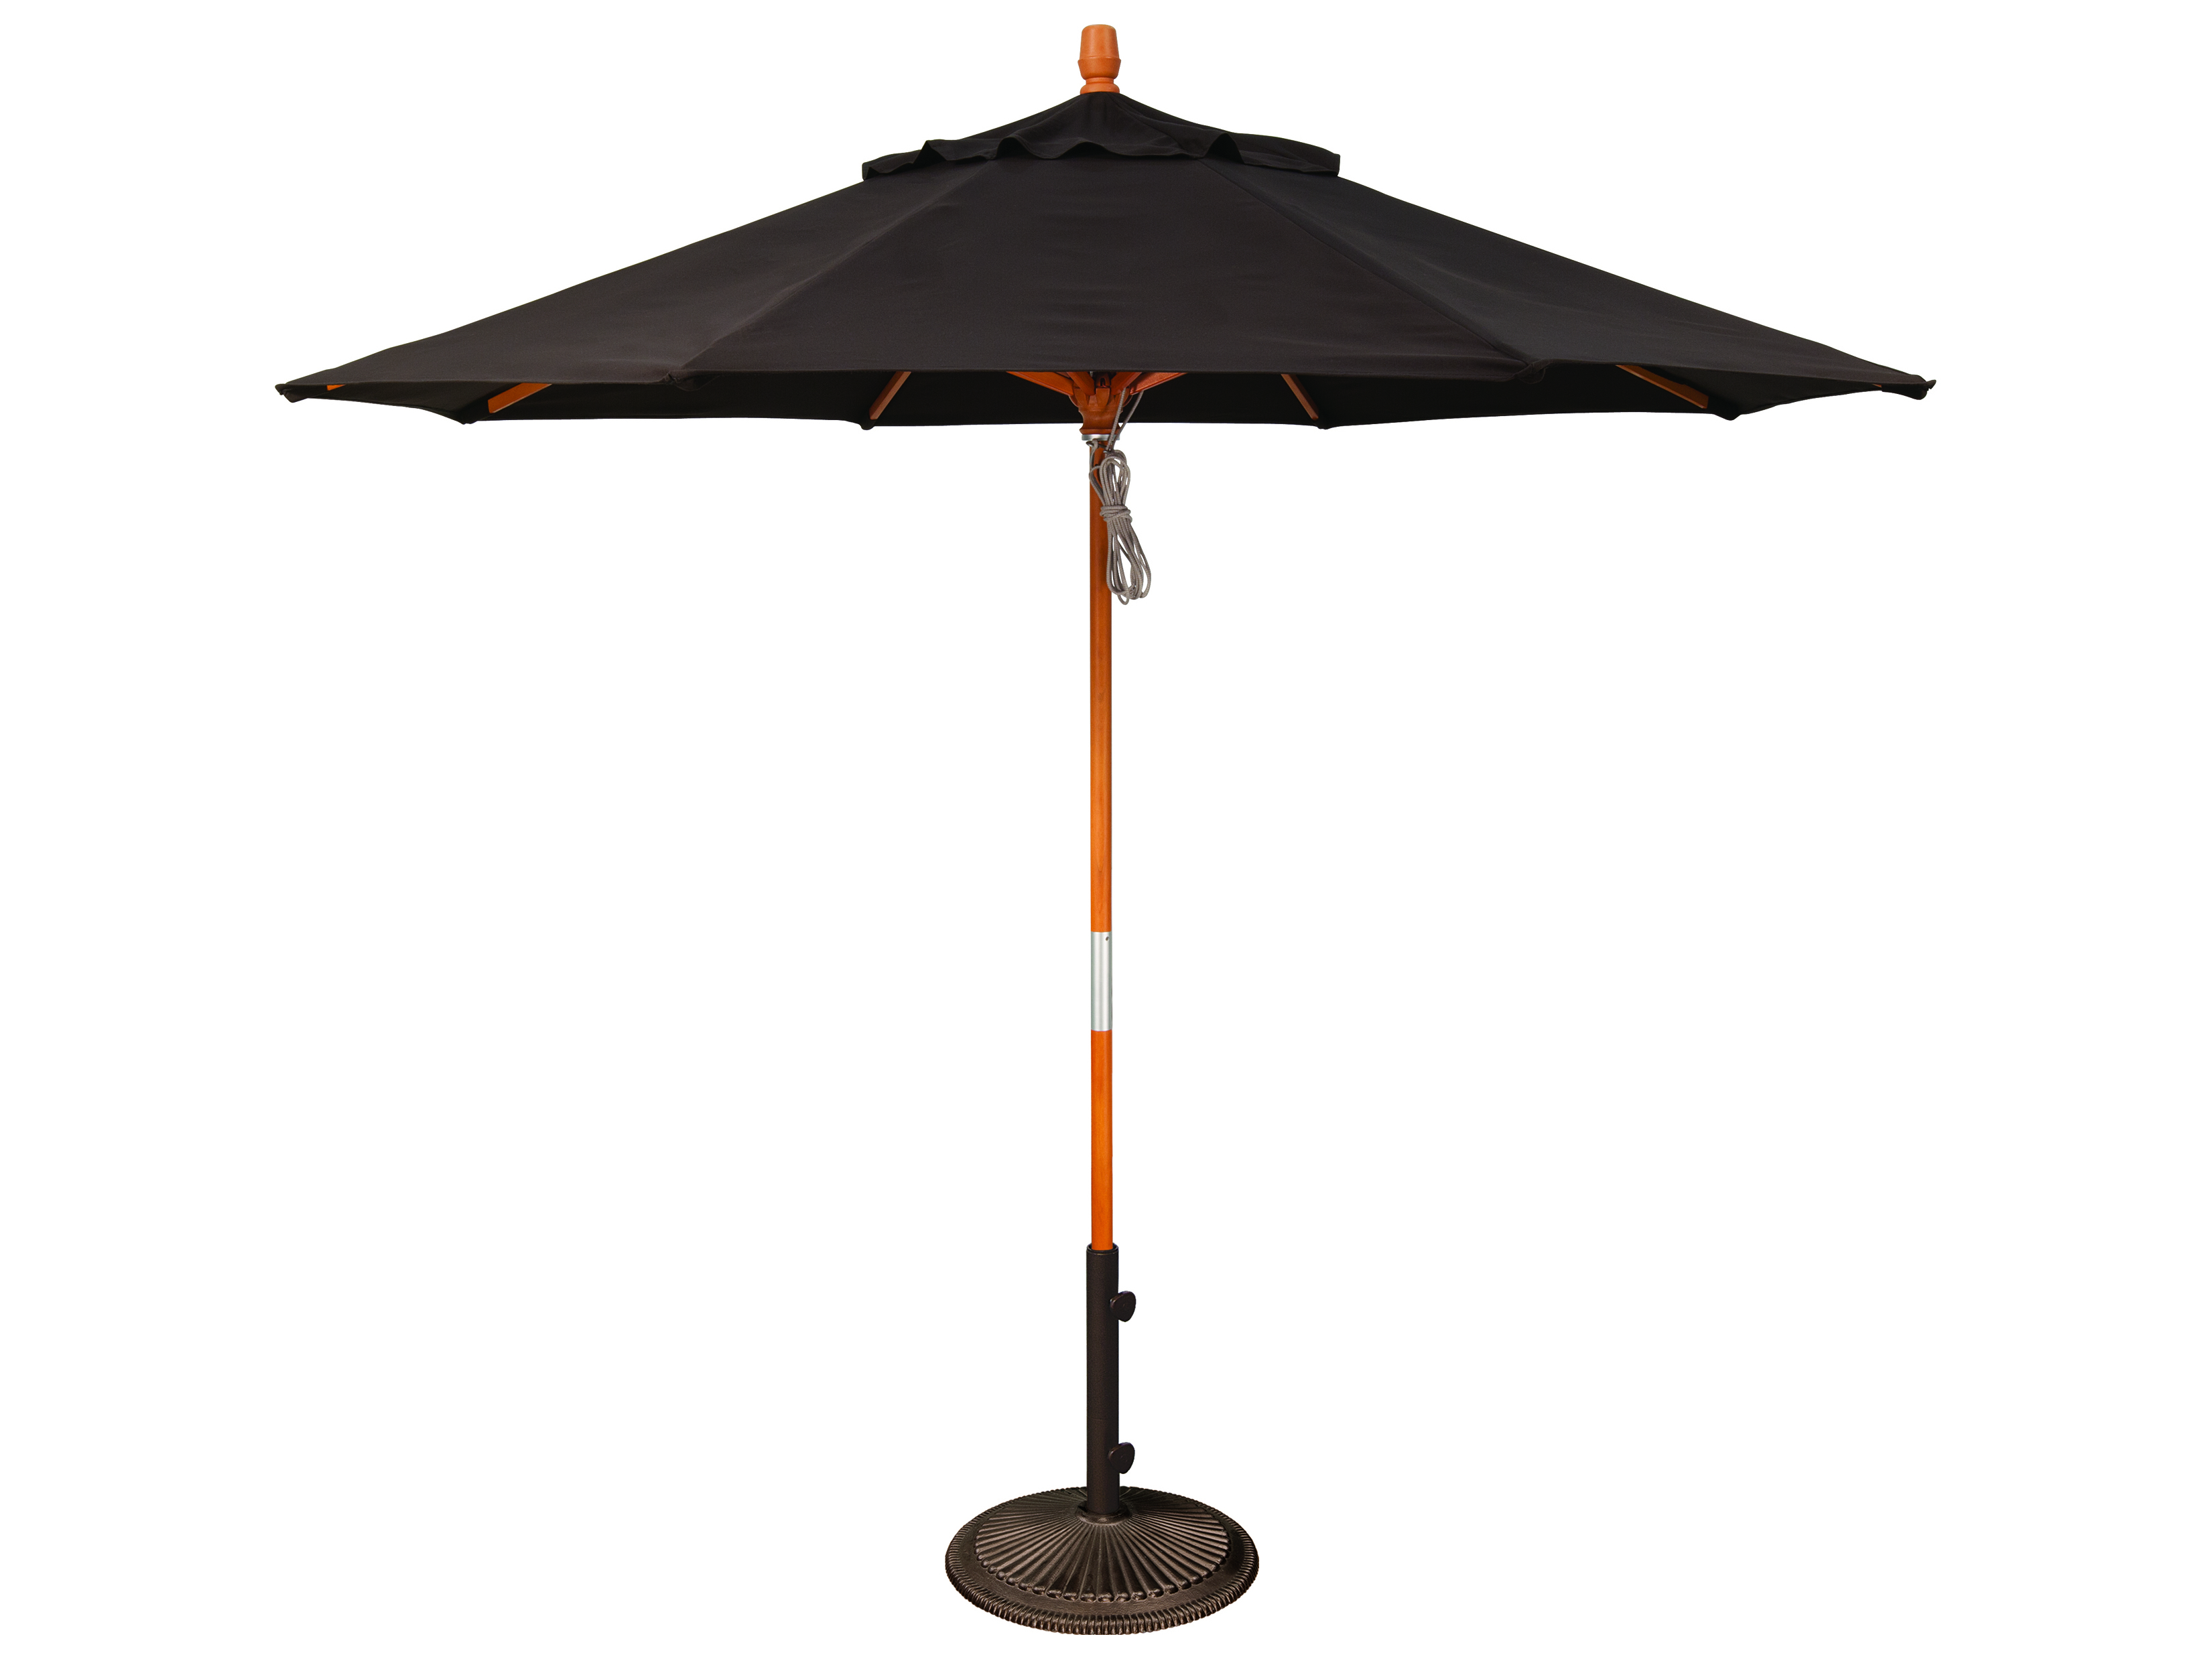 treasure zm to octagon tilt umbrella hover patio lift garden market shade auto crank umbrellas aluminum zoom foot